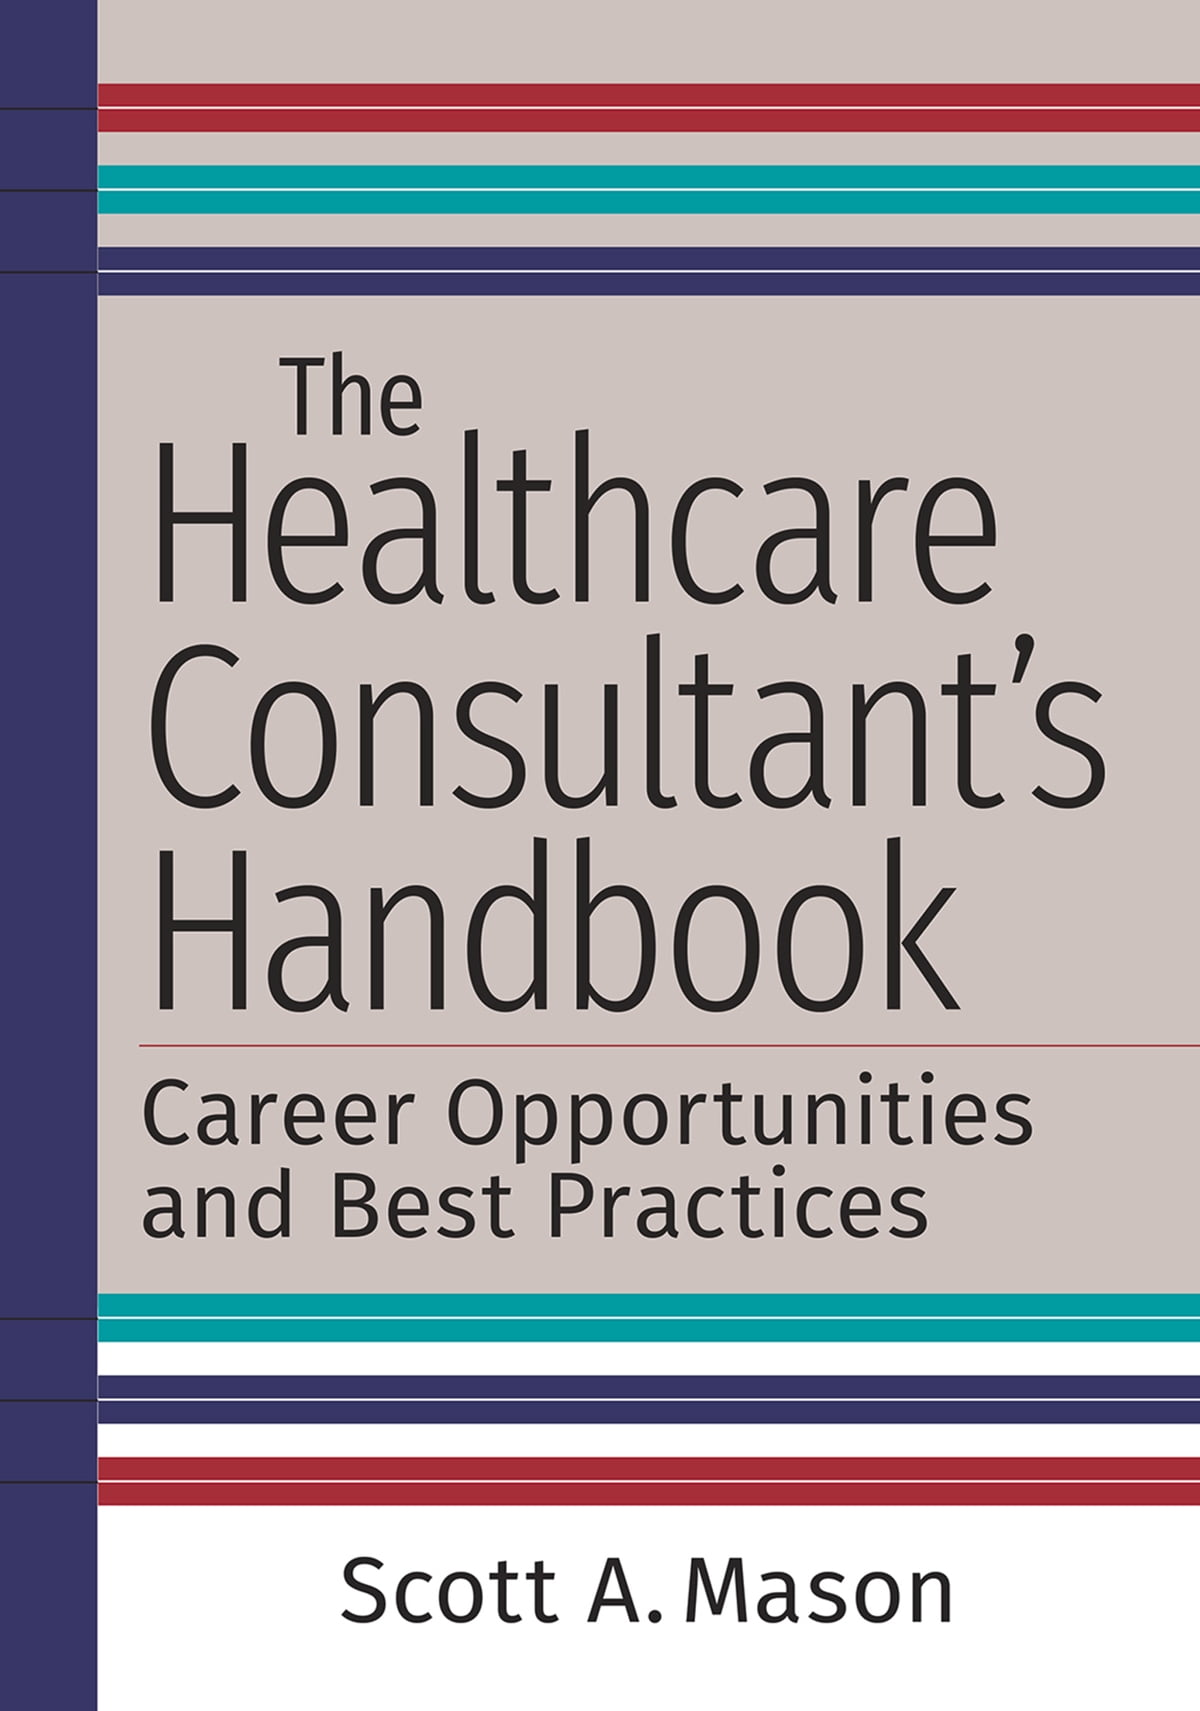 The Healthcare Consultant S Handbook Career Opportunities And Best Practices Ebook By Scott A Mason 9781640552081 Rakuten Kobo United States